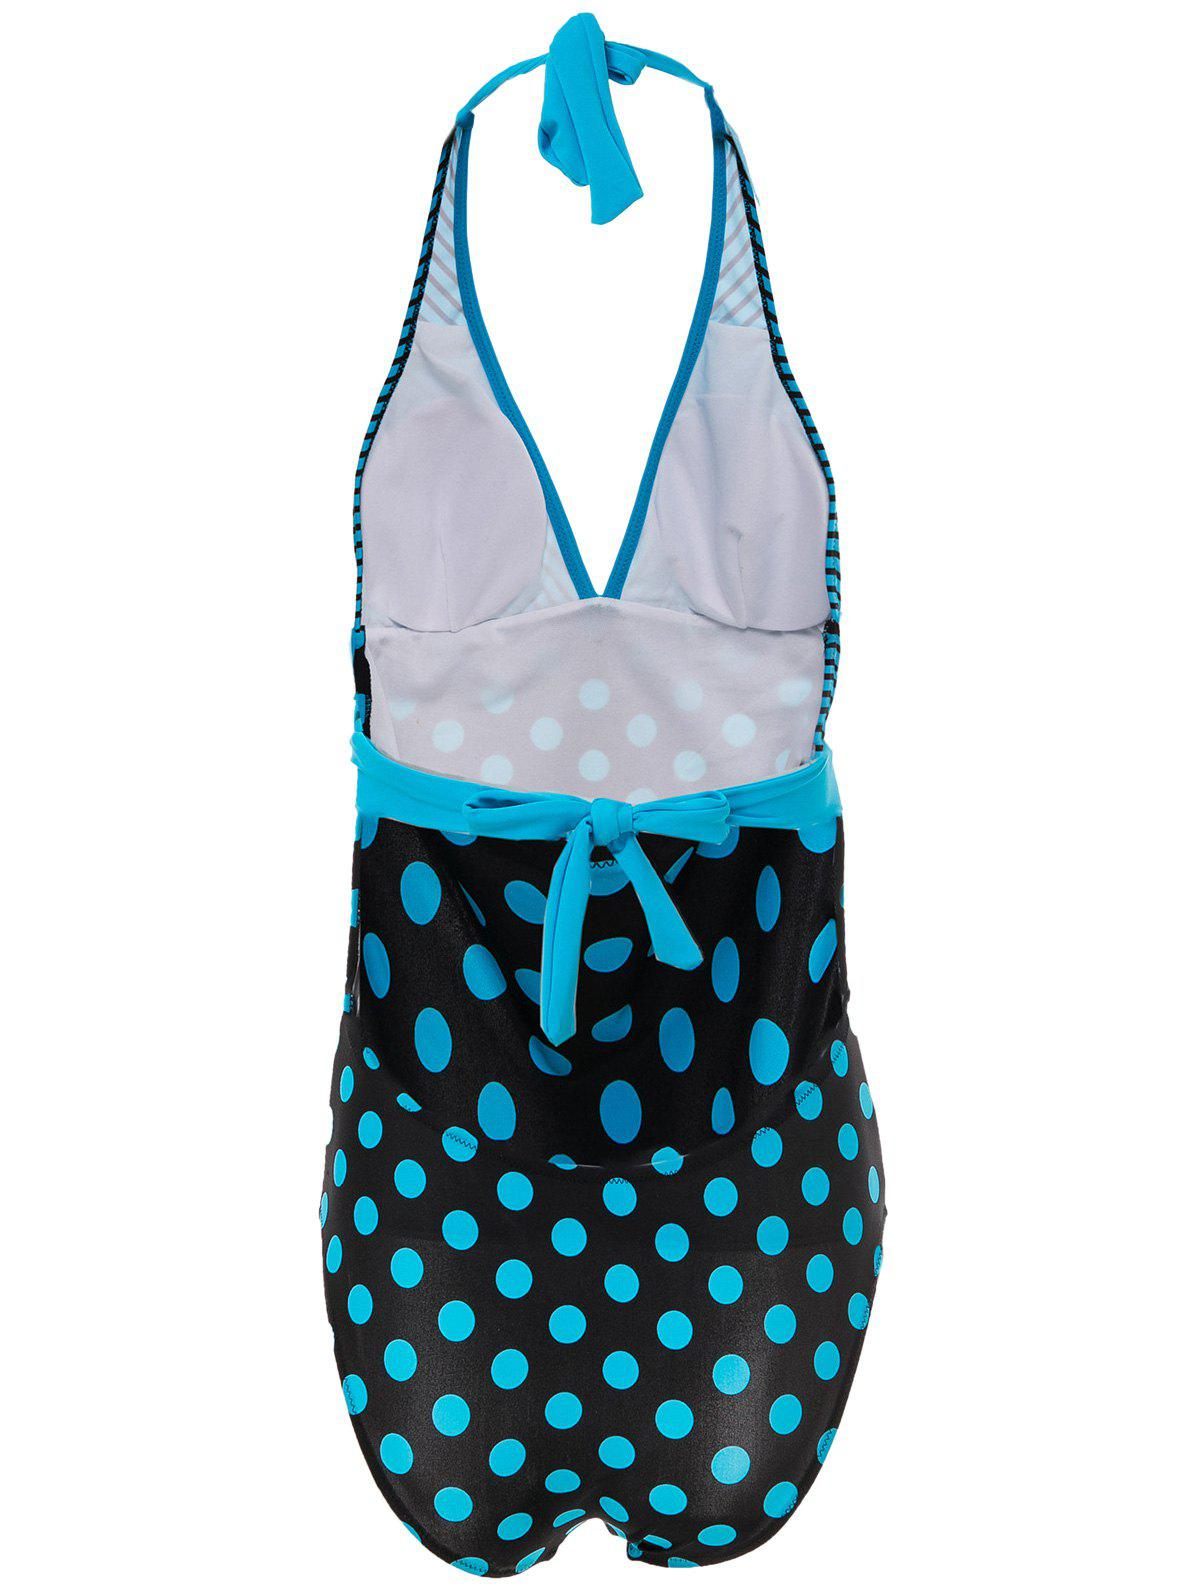 Sexy Halter Polka Dot Striped One-Piece Maillots de bain pour femmes - Pers 3XL